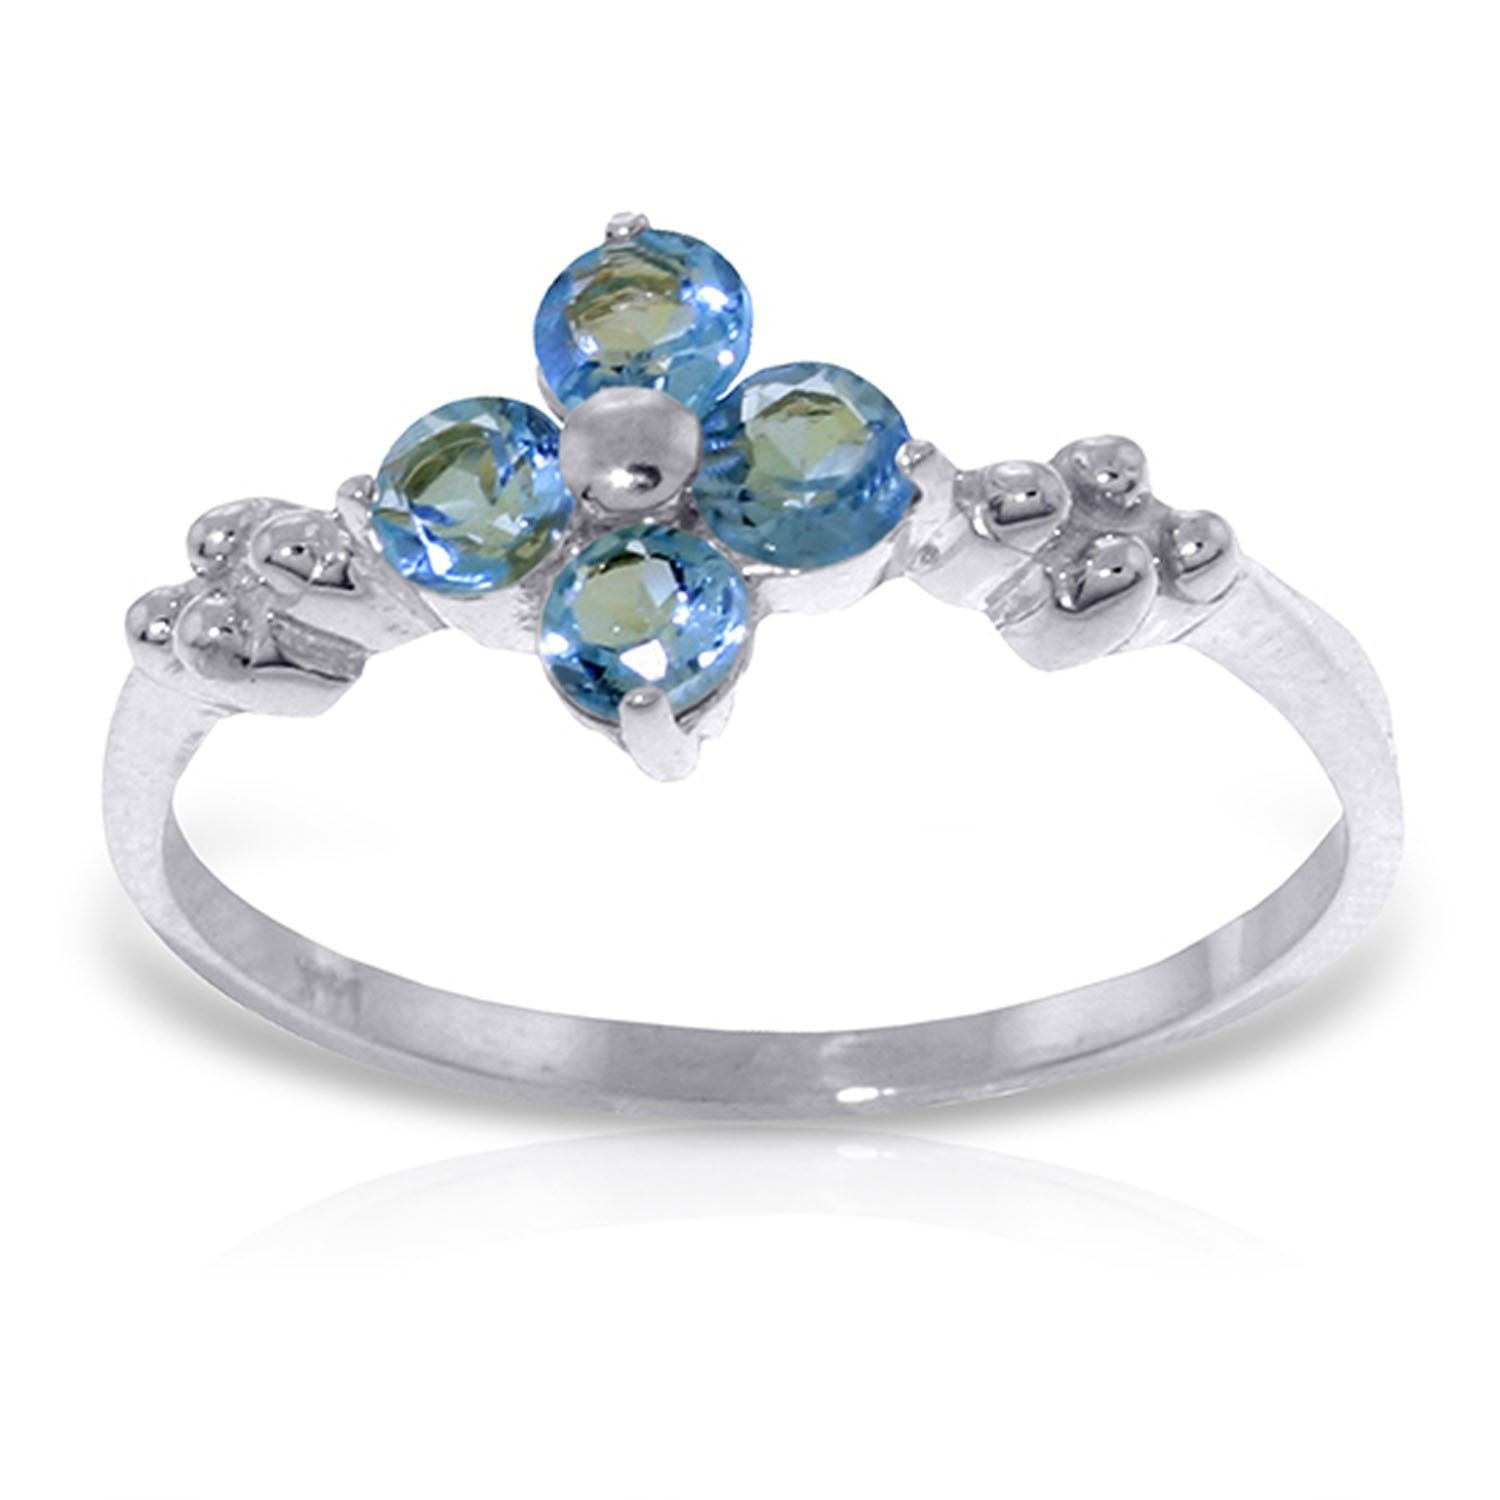 ALARRI 0.58 Carat 14K Solid White Gold If You Love Blue Topaz Ring With Ring Size 5